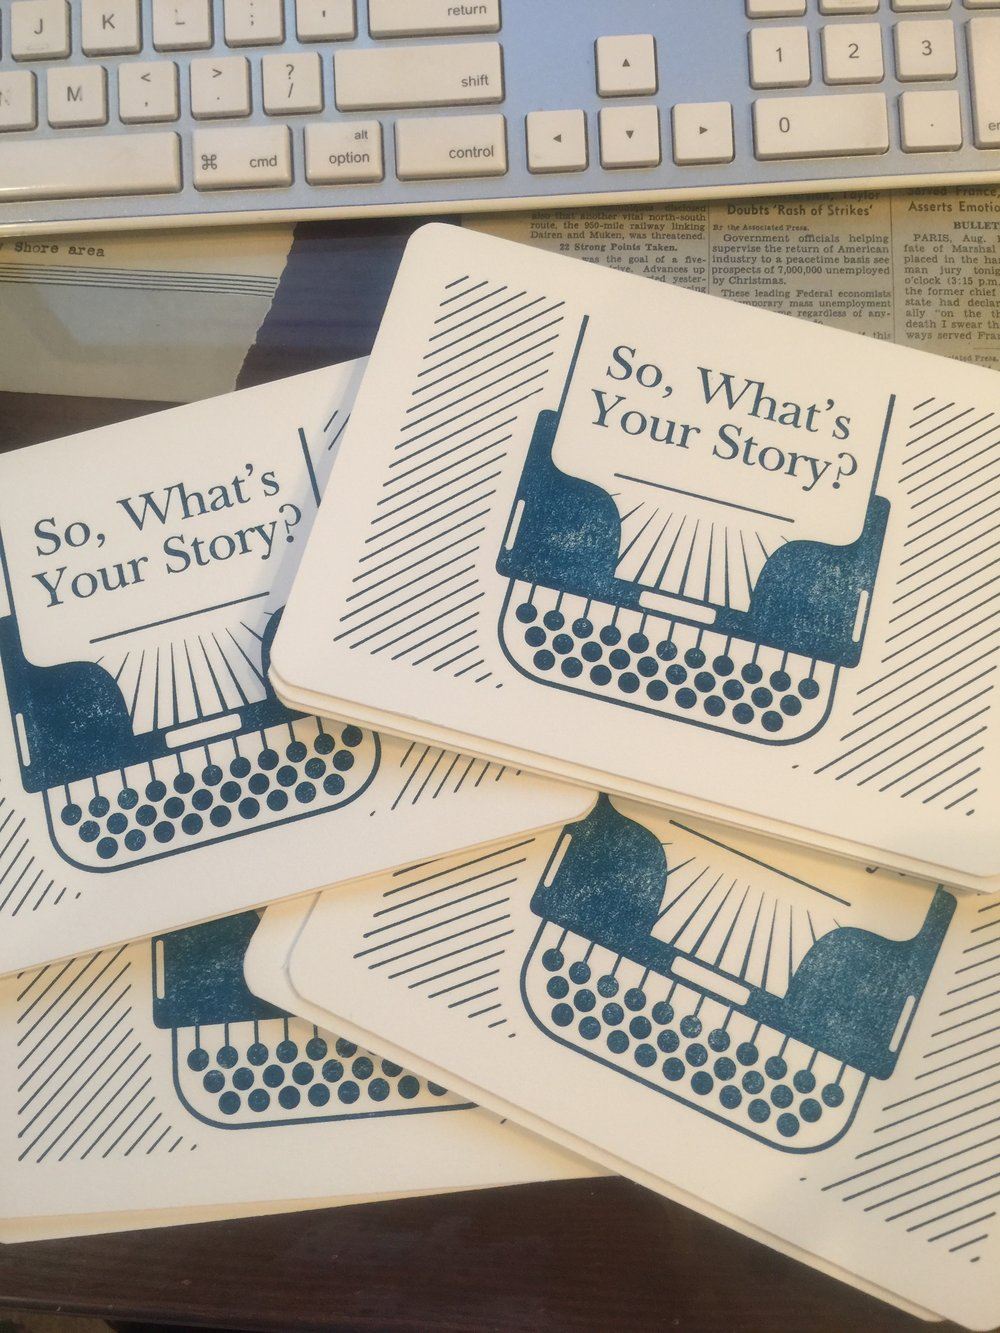 We'll write you poetry, put it on a beautiful letterpress postcard, slap a stamp on it, and get it delivered right to your door.